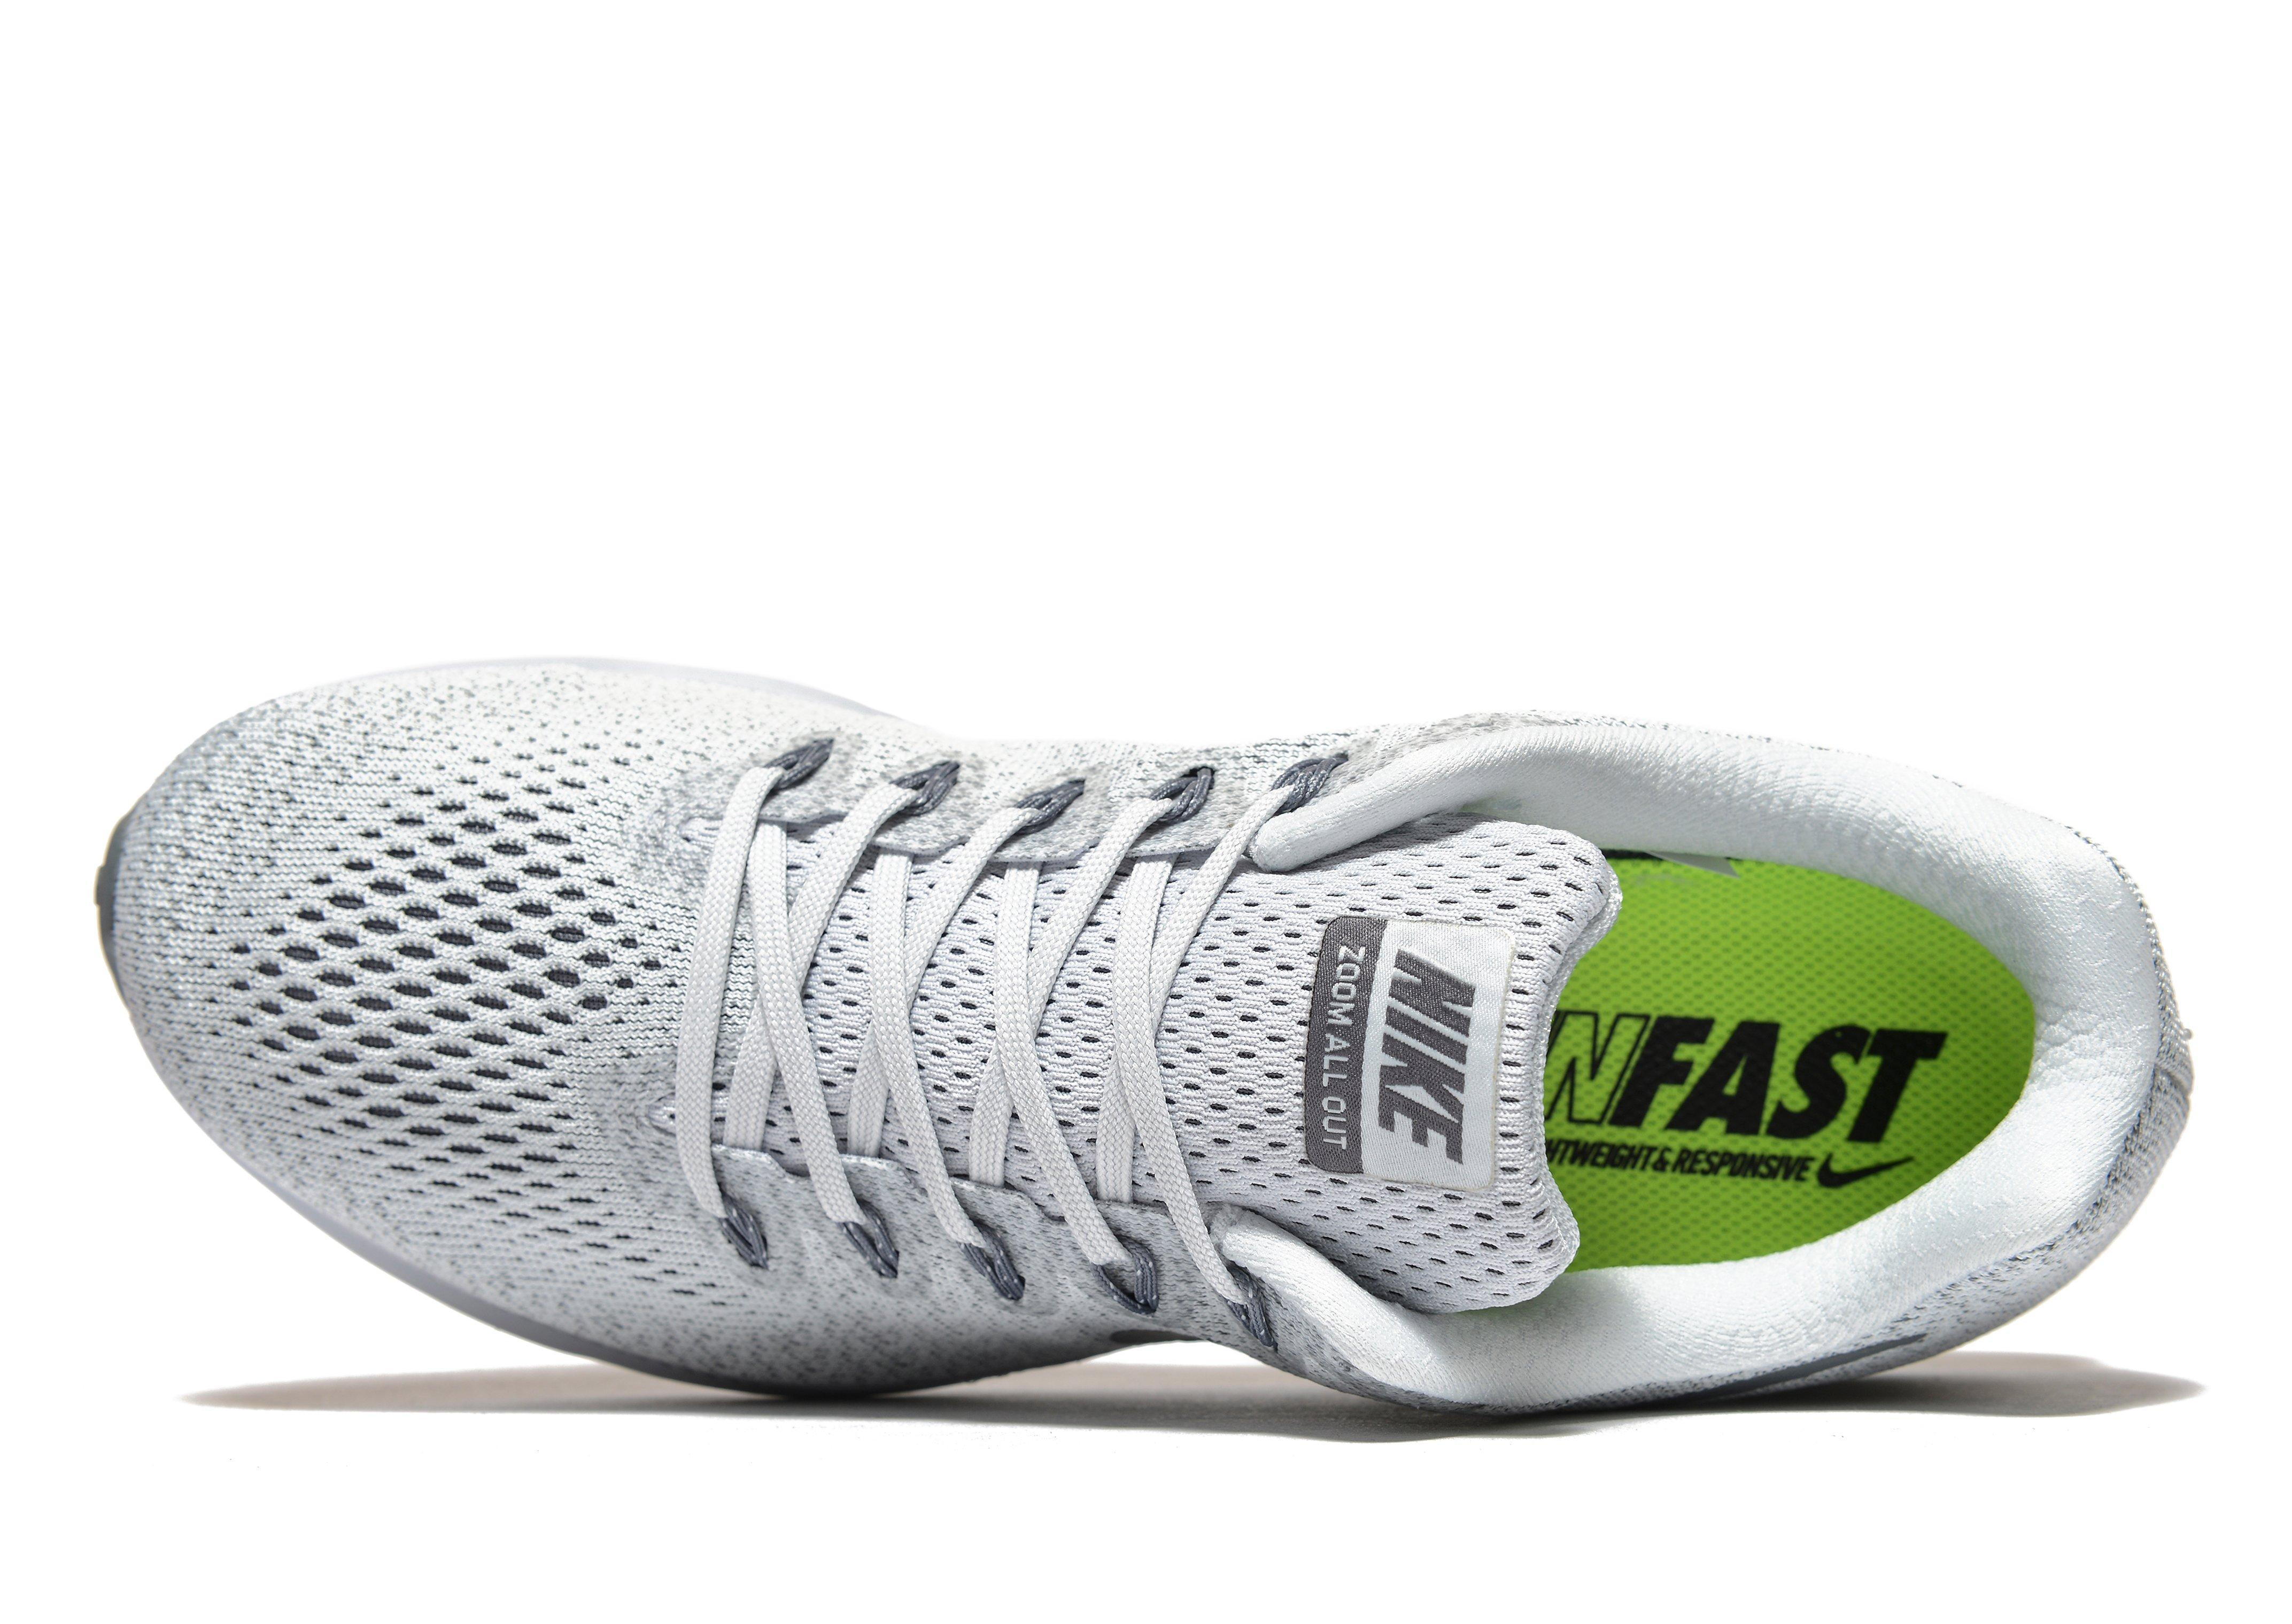 c9ff6ffdc711 ... shopping lyst nike zoom all out low in gray for men eb6a9 bac9c